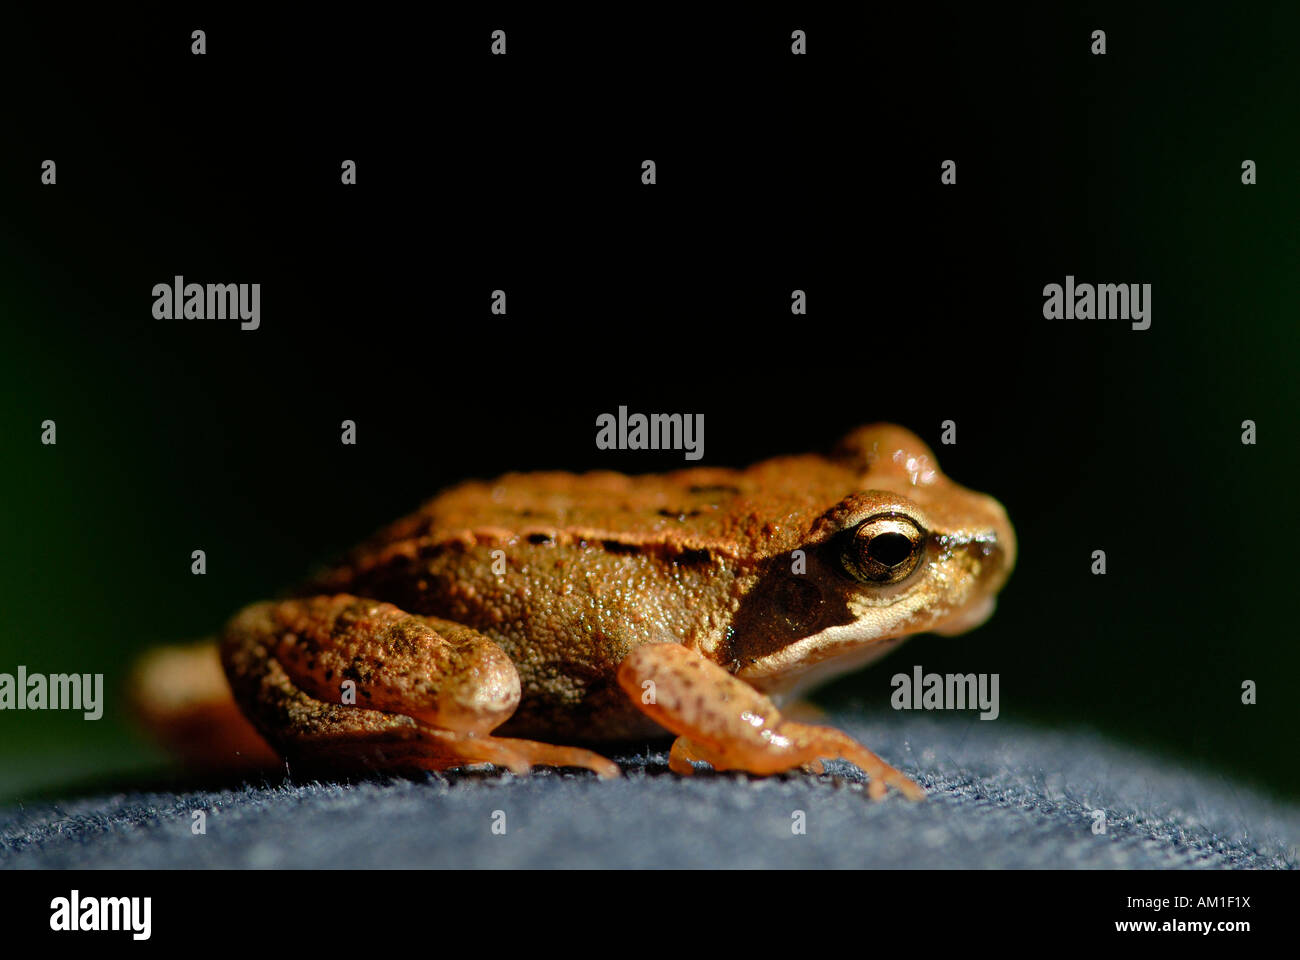 Young common frog (Rana temporaria) - Germany, Europe. - Stock Image